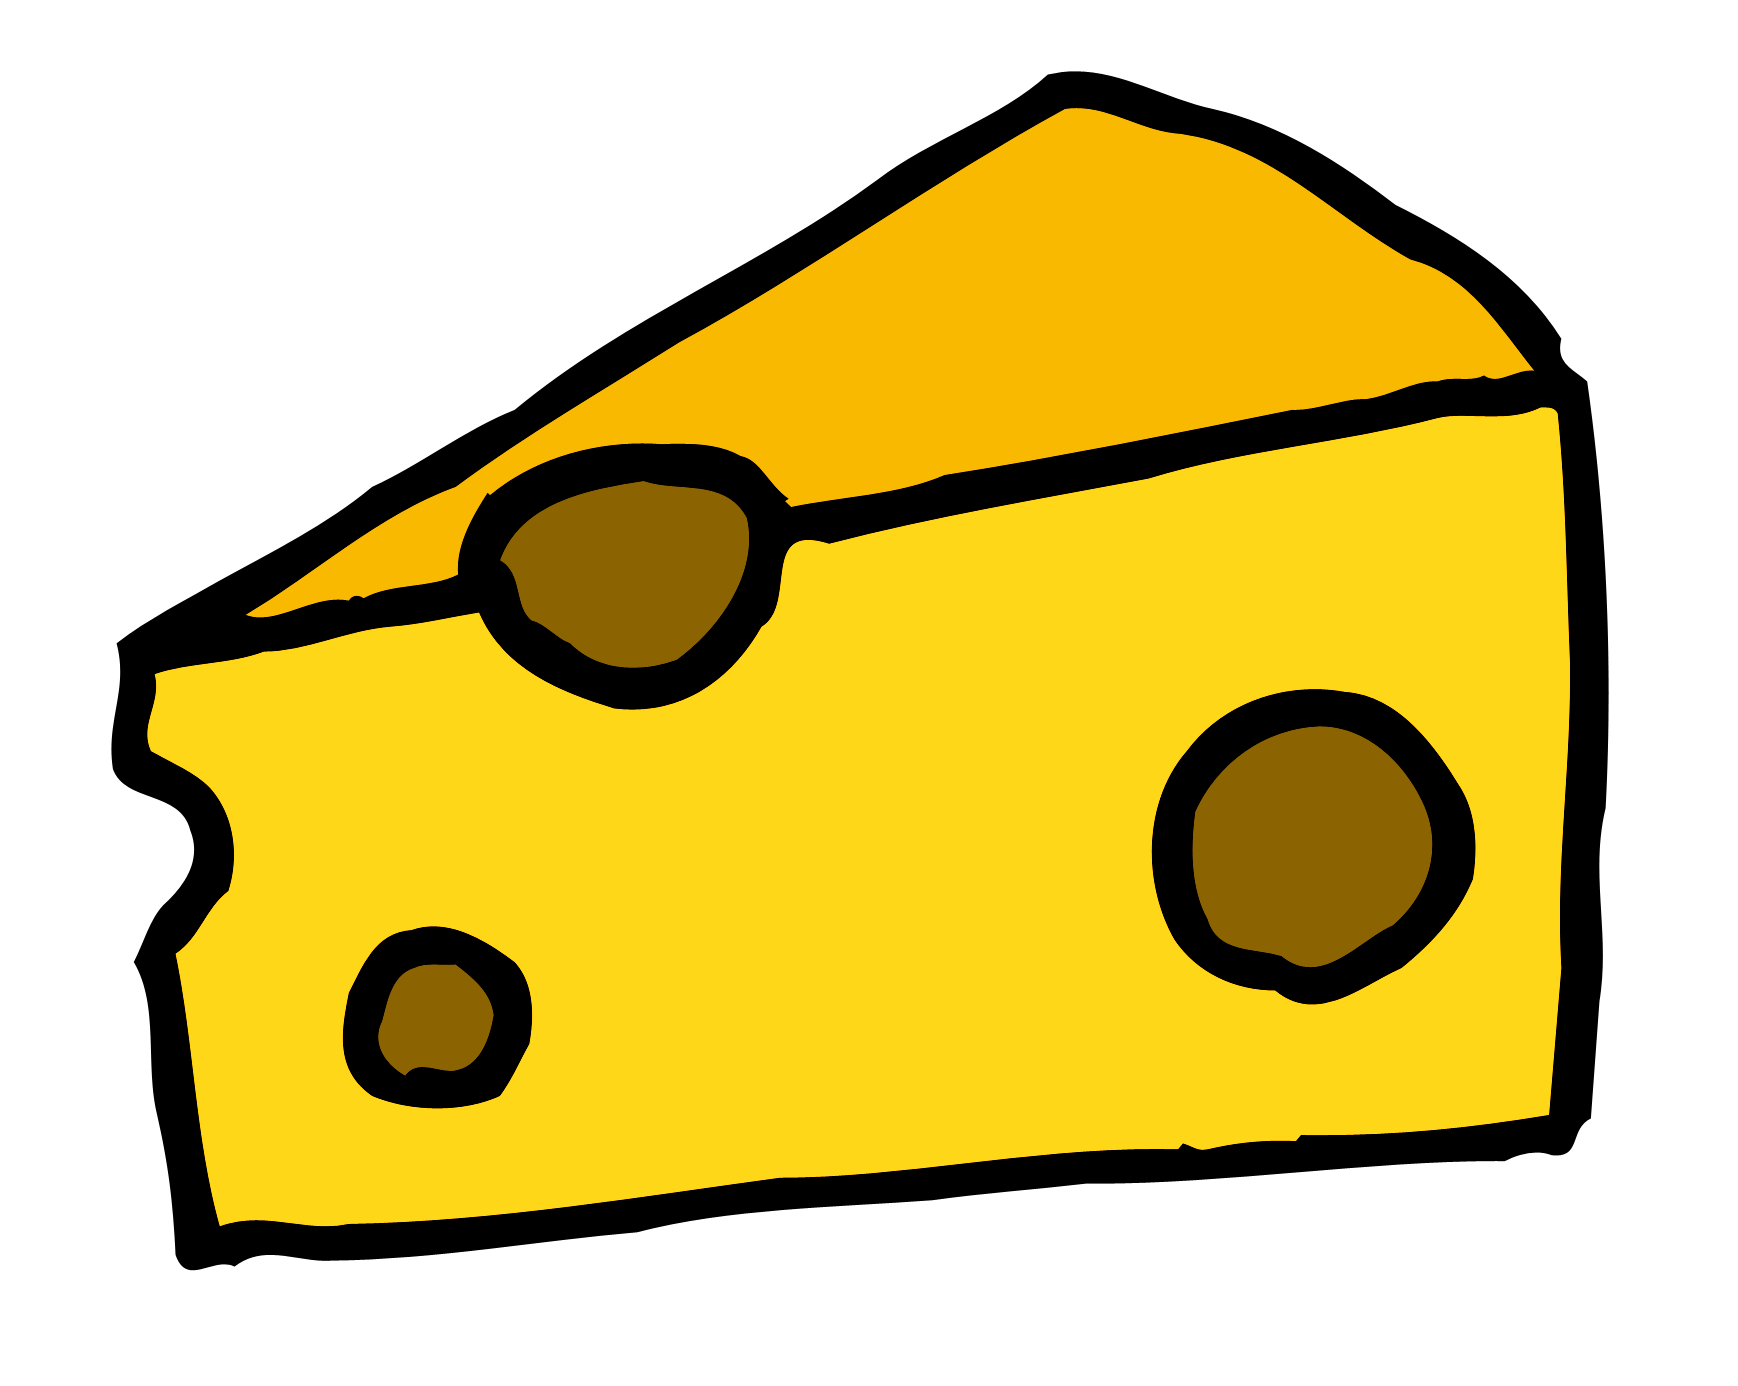 Clip art free images. Cheese clipart